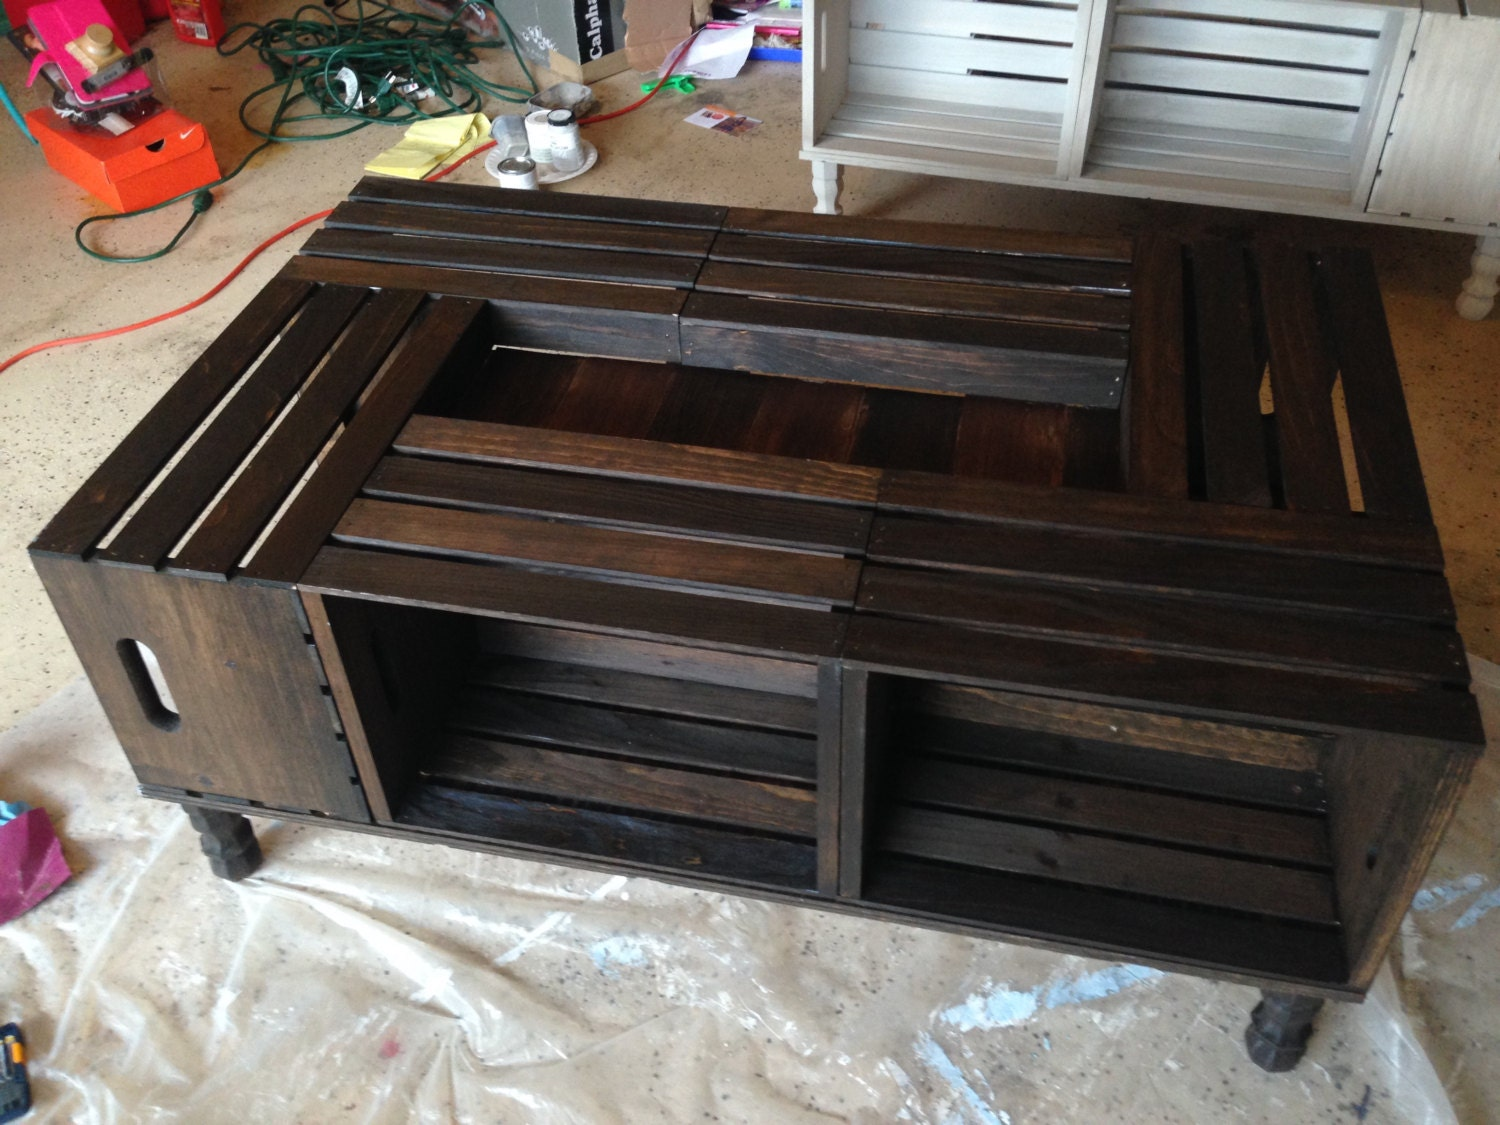 DIY Wooden Wine Crate Coffee Table – Lee's Summit ... |Wooden Crate Coffee Table